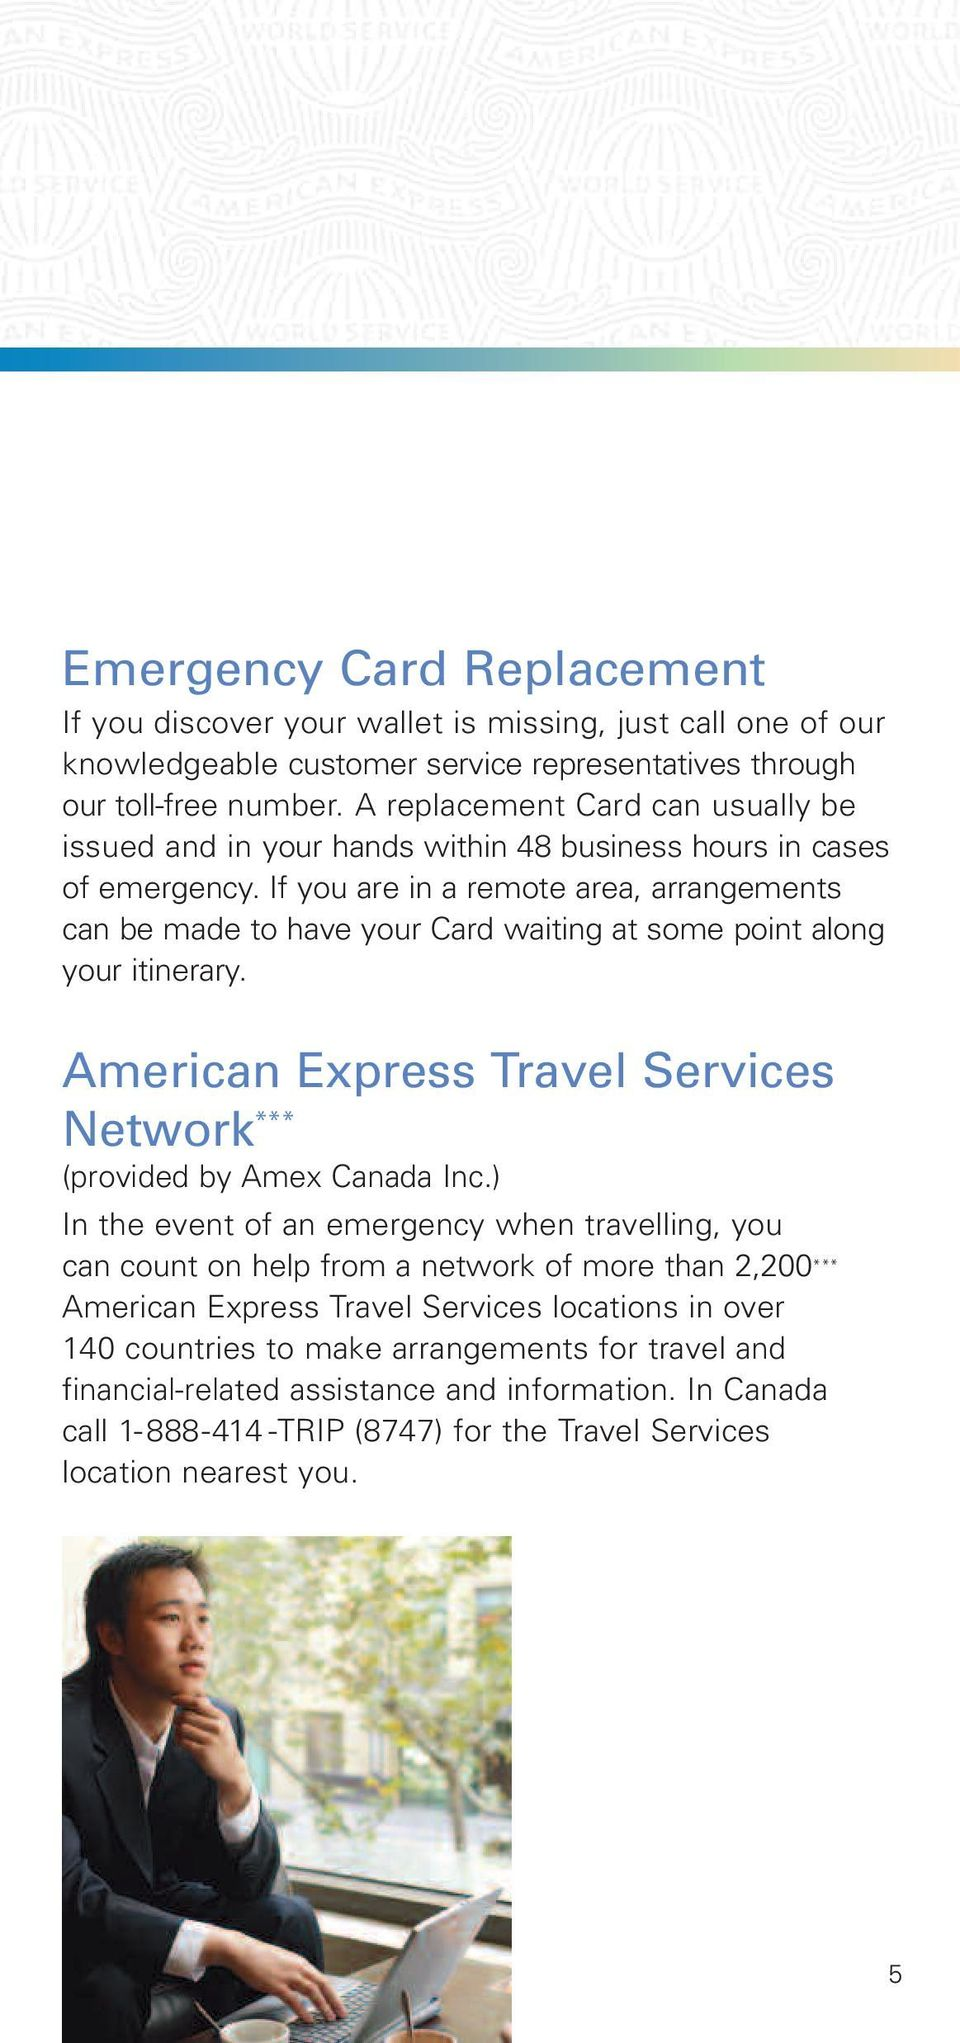 If you are in a remote area, arrangements can be made to have your Card waiting at some point along your itinerary. American Express Travel Services Network *** (provided by Amex Canada Inc.